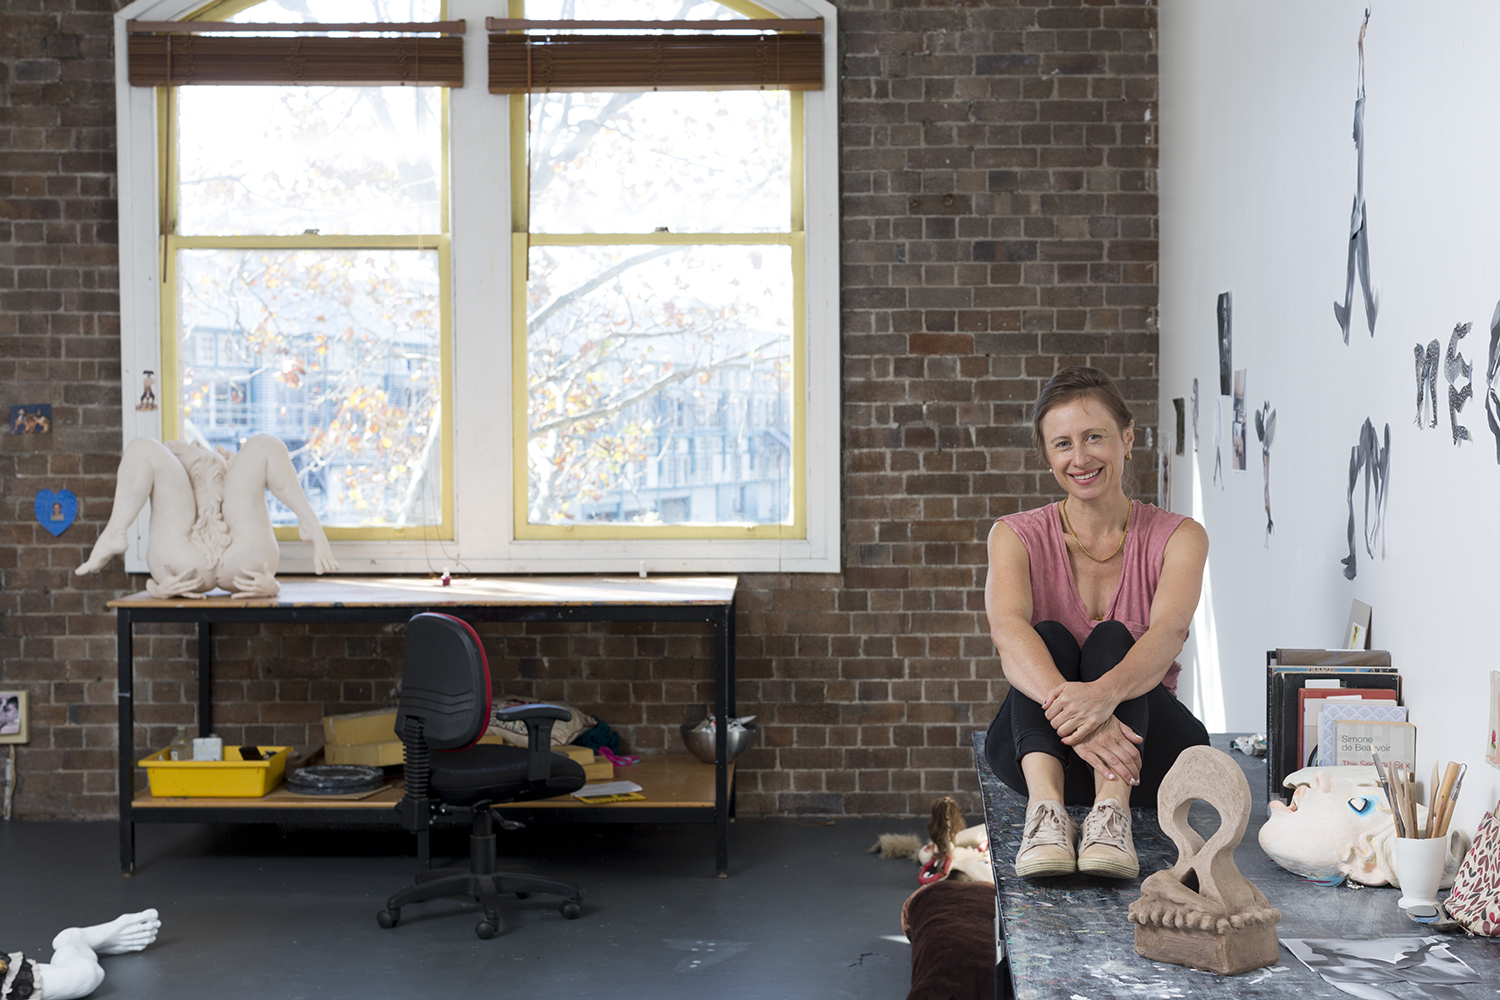 Cybele Cox in her Artspace Studio, 2018. Photo: Jessica Maurer